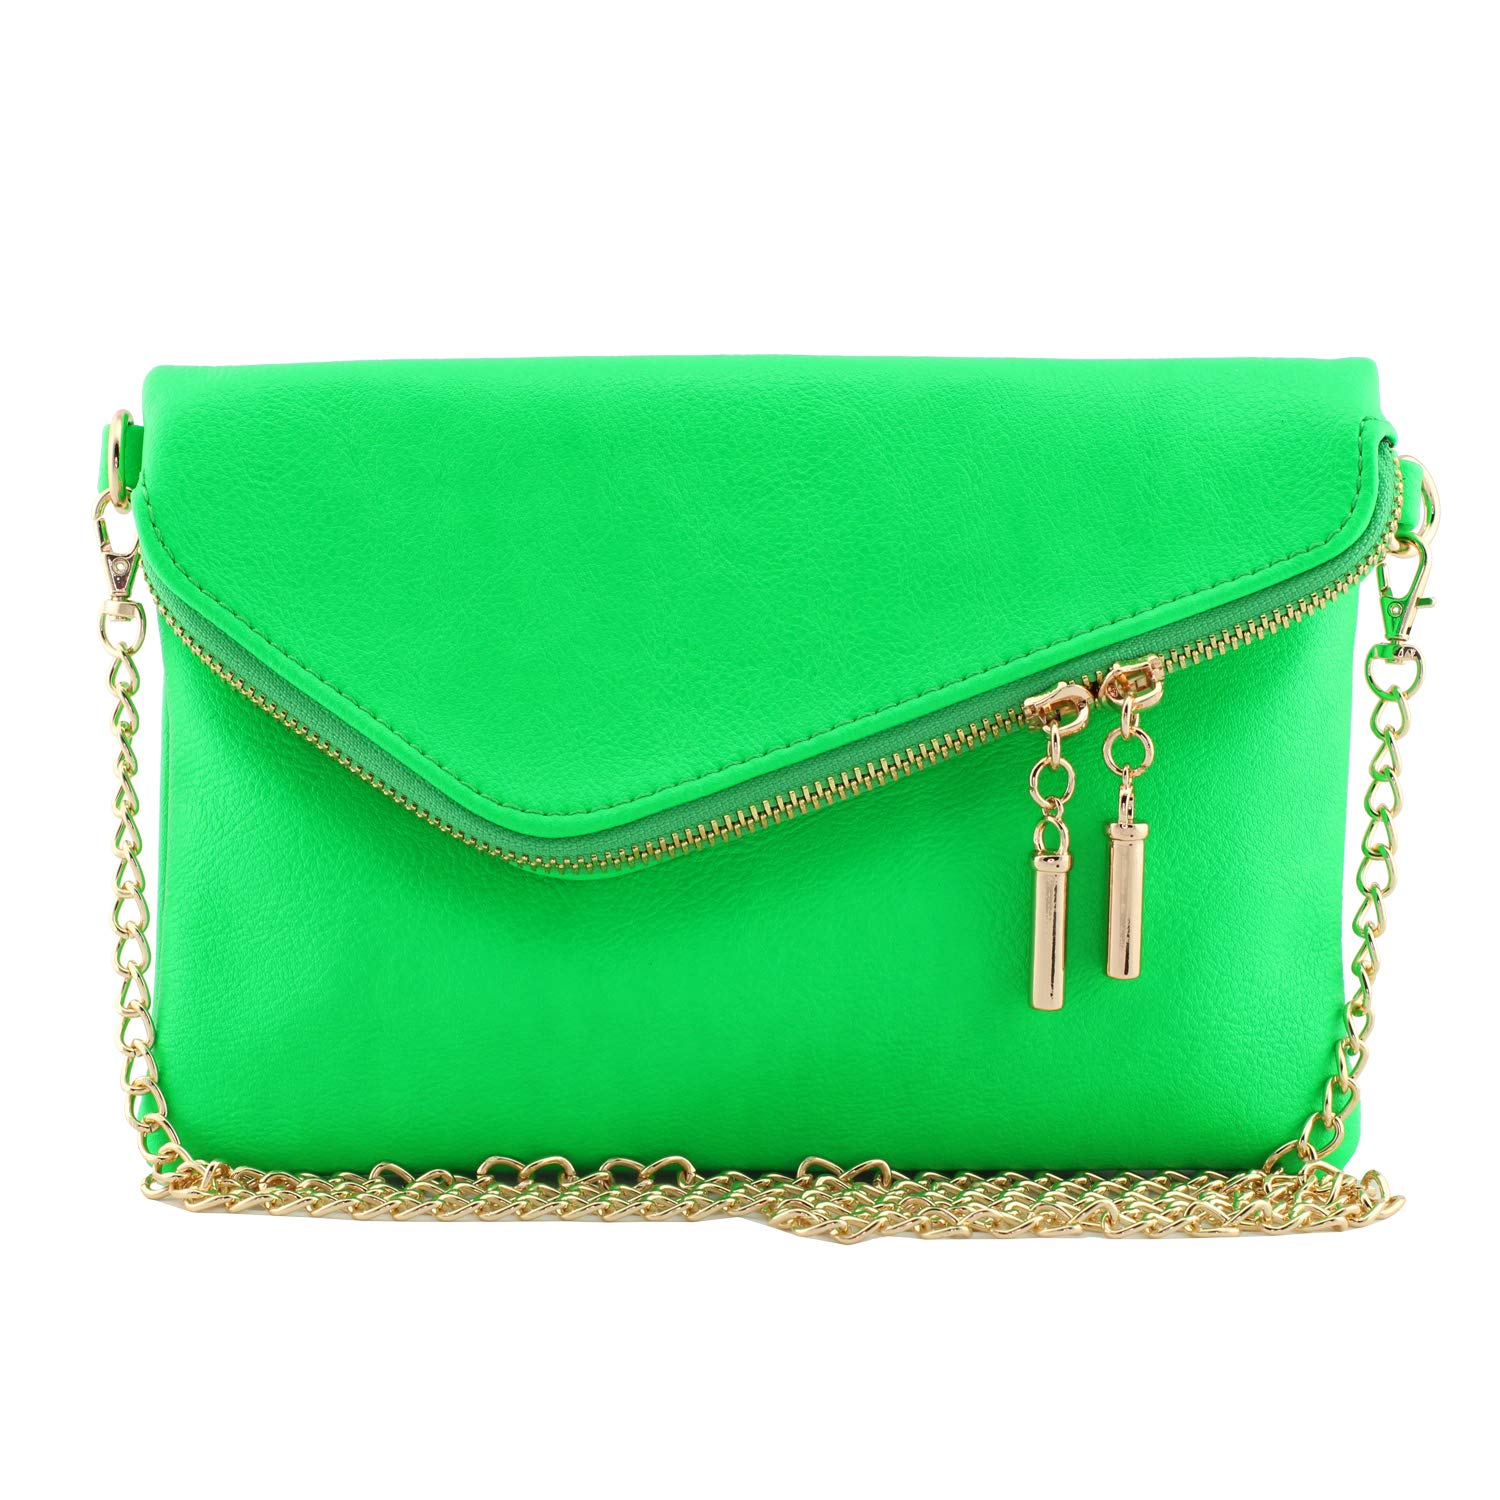 Multi Zipper Pocket Small Wristlet Crossbody Bag and Envelope Wristlet Clutch Crossbody Bag with Chain Strap Fluorescent Neon Colors (Neon Green-envelope) by Amy & Joey